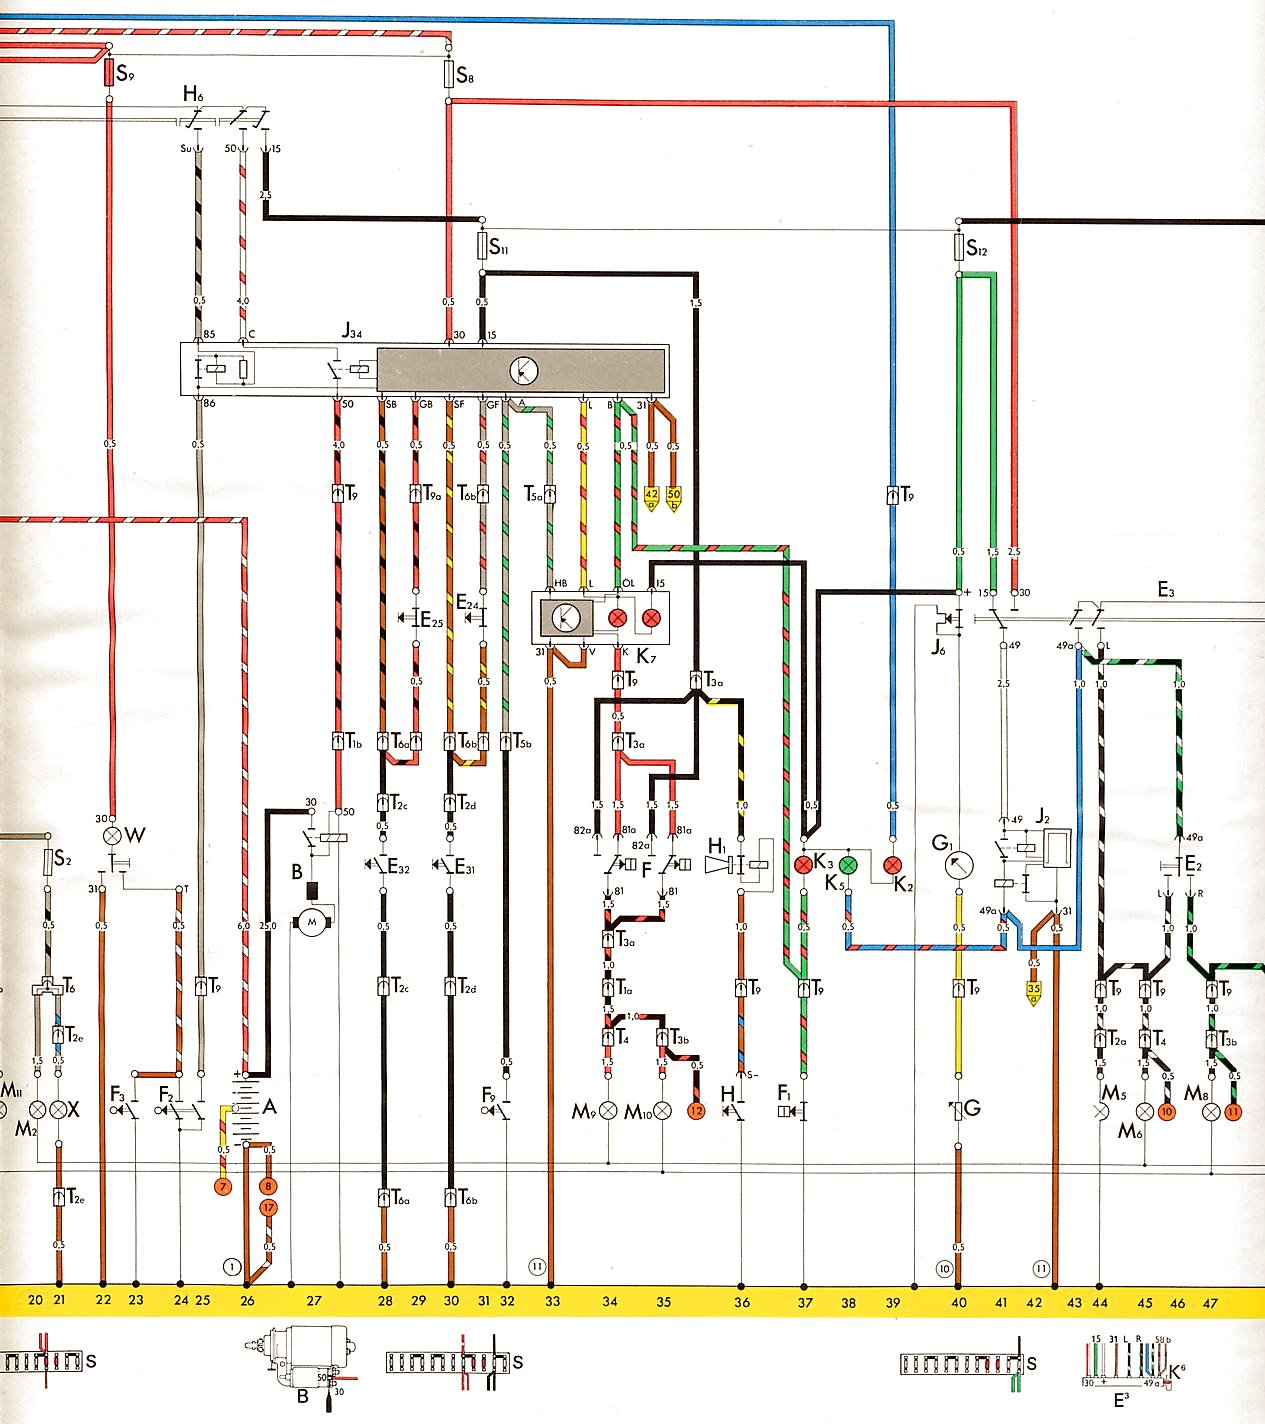 1973 Vw Beetle Ignition Coil Wiring Diagram : Vw bug ignition coil wiring diagram distributor